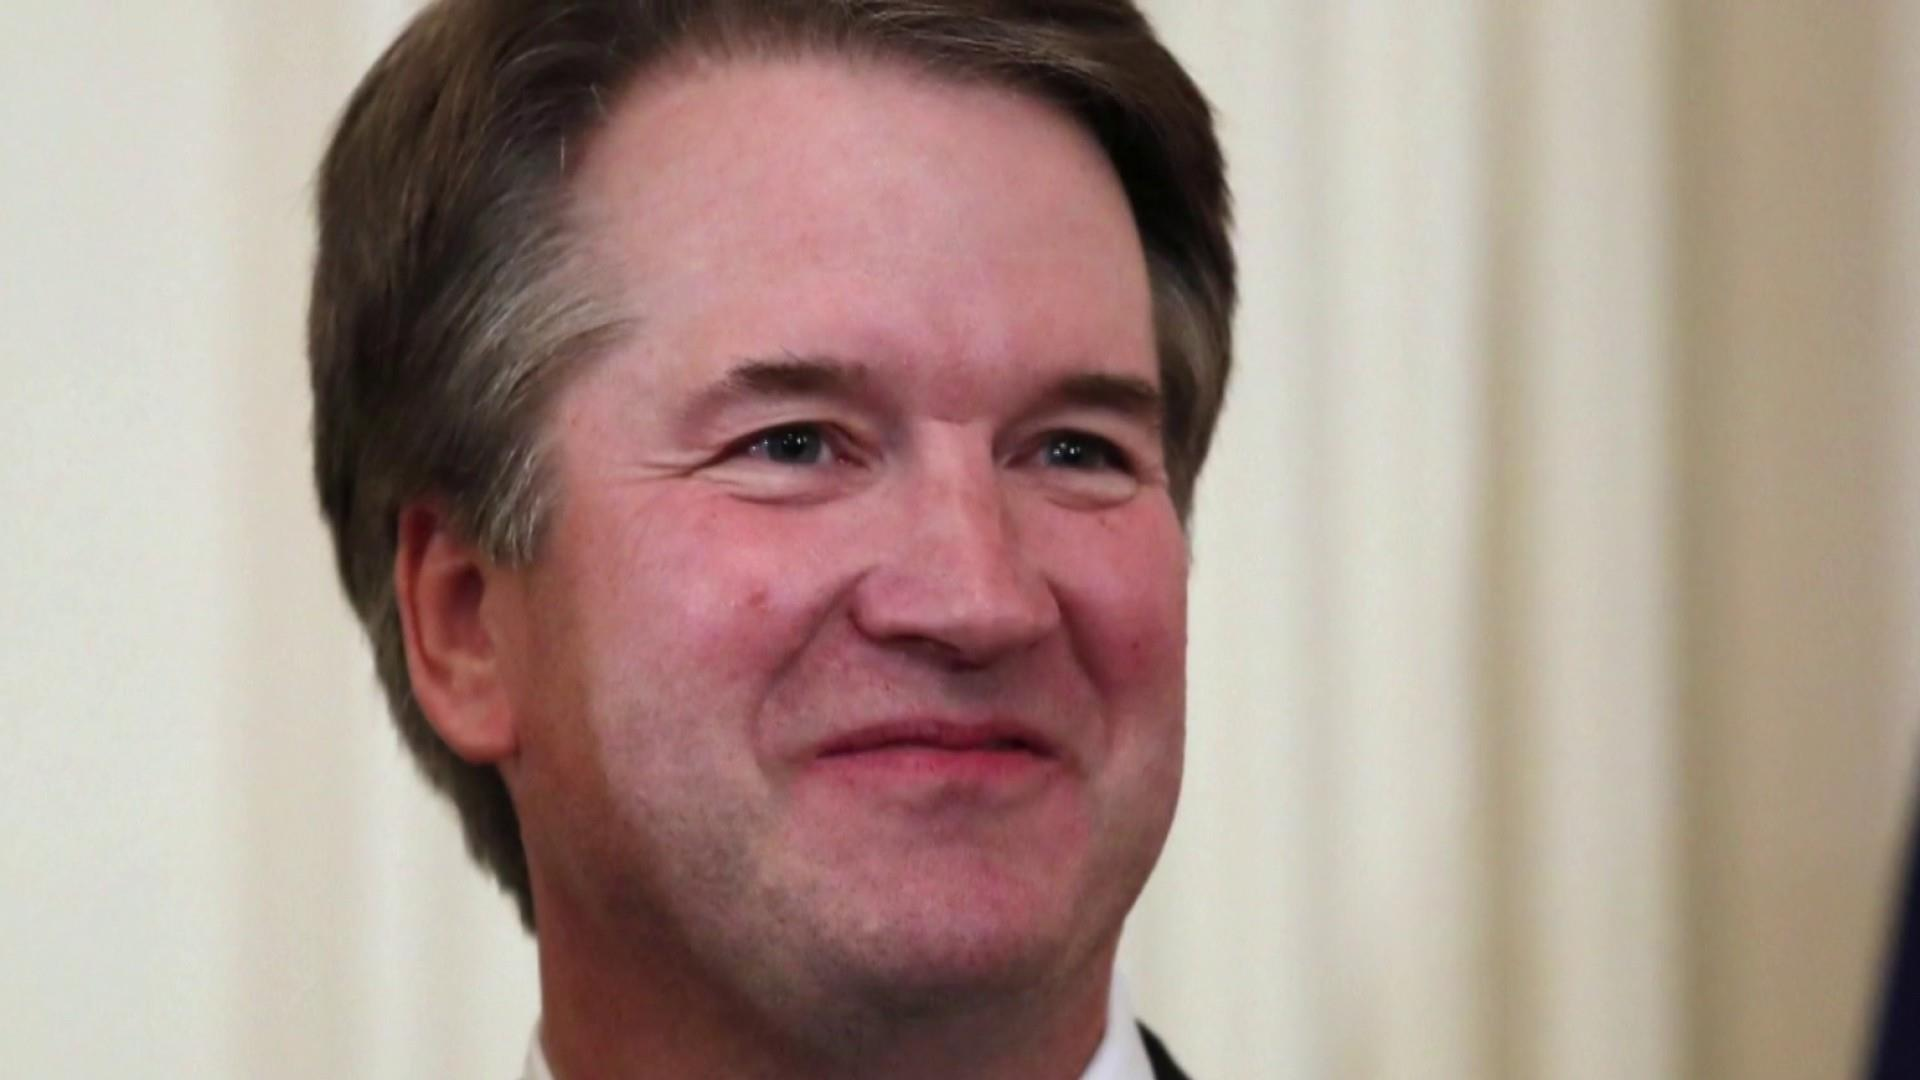 Kavanaugh touts independence after contentious start to confirmation hearing